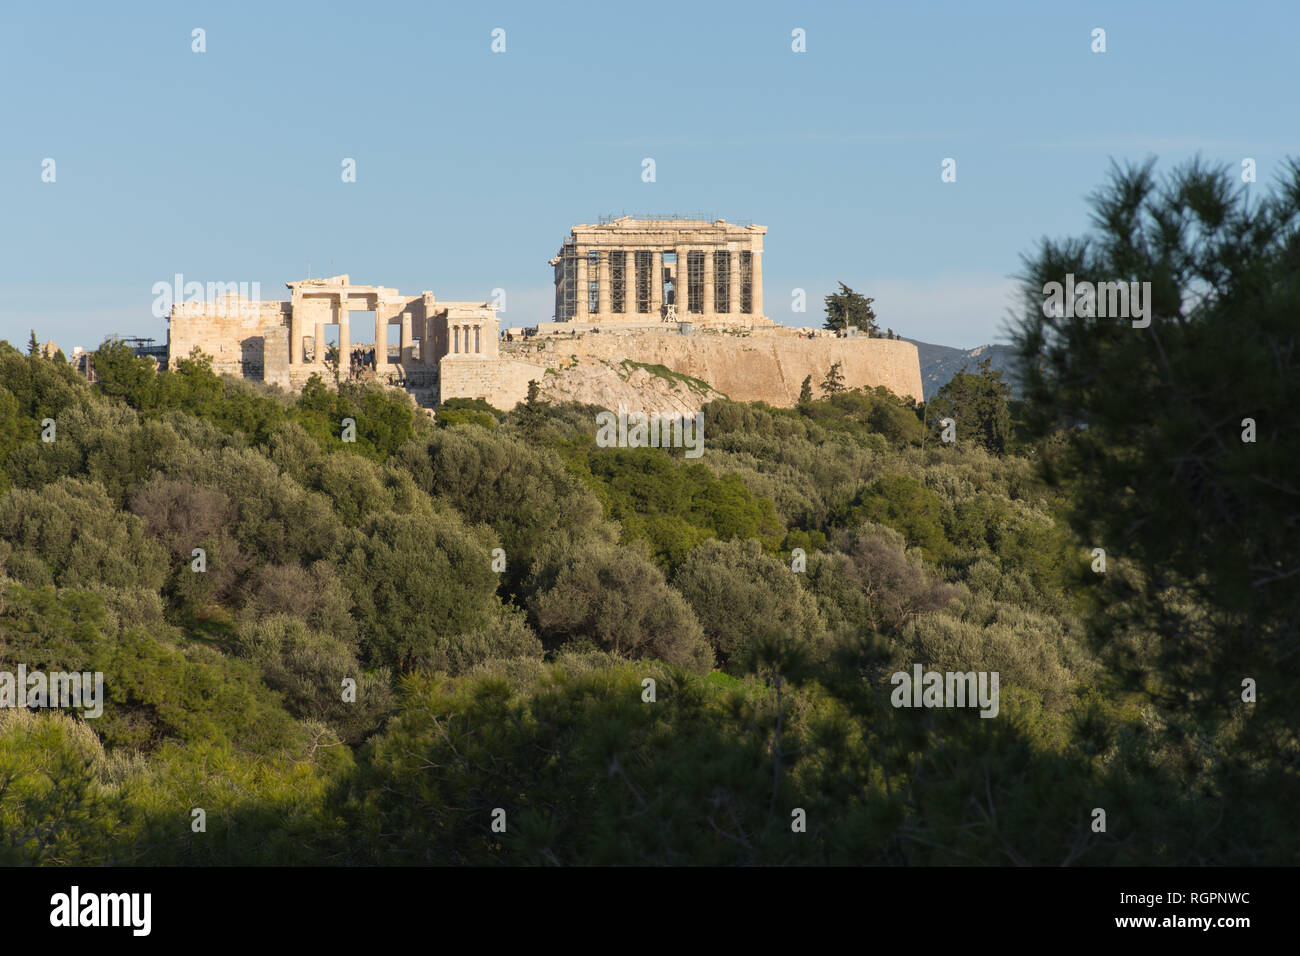 The Acropolis in Athens from Philopapou Hill - Stock Image